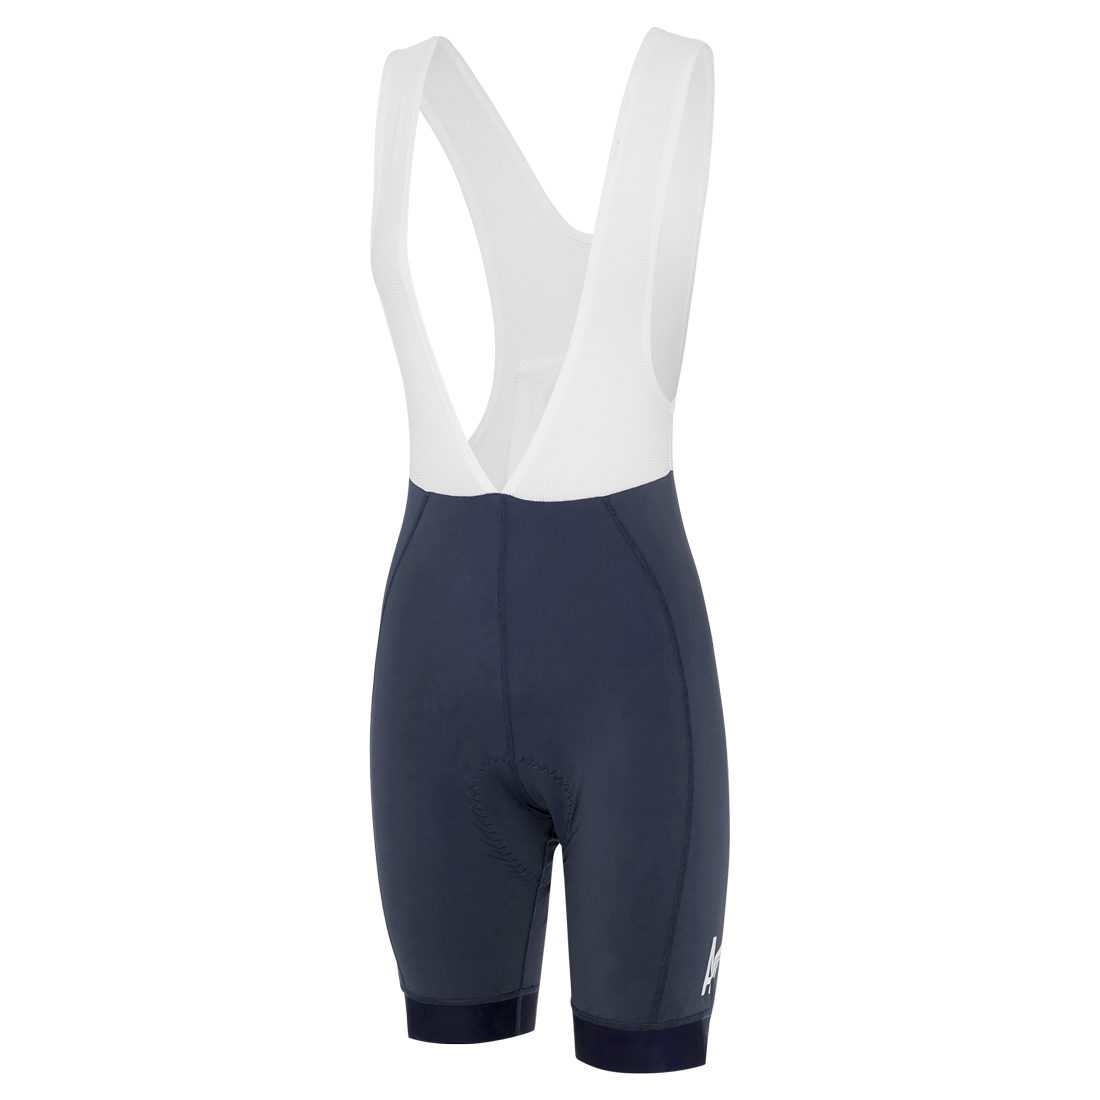 Womens A Line Bib Shorts Navy